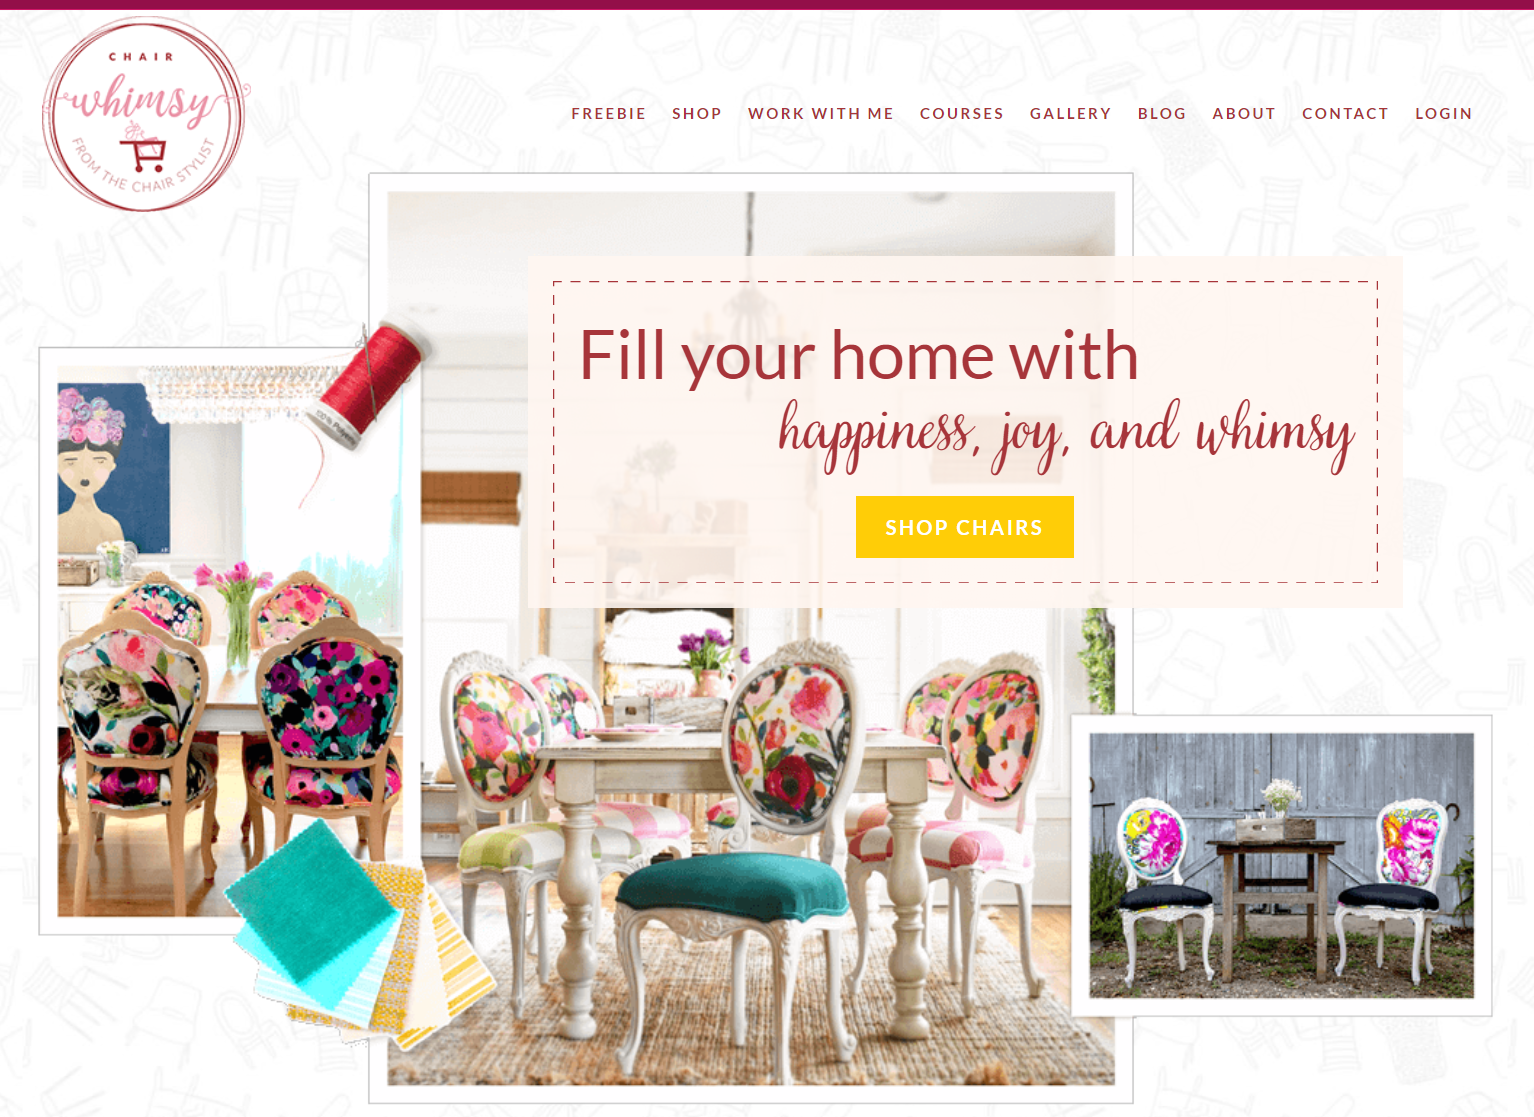 Screenshot of the Chair Whimsy website with a banner saying Fill Your home with happiness, joy, and whimsy